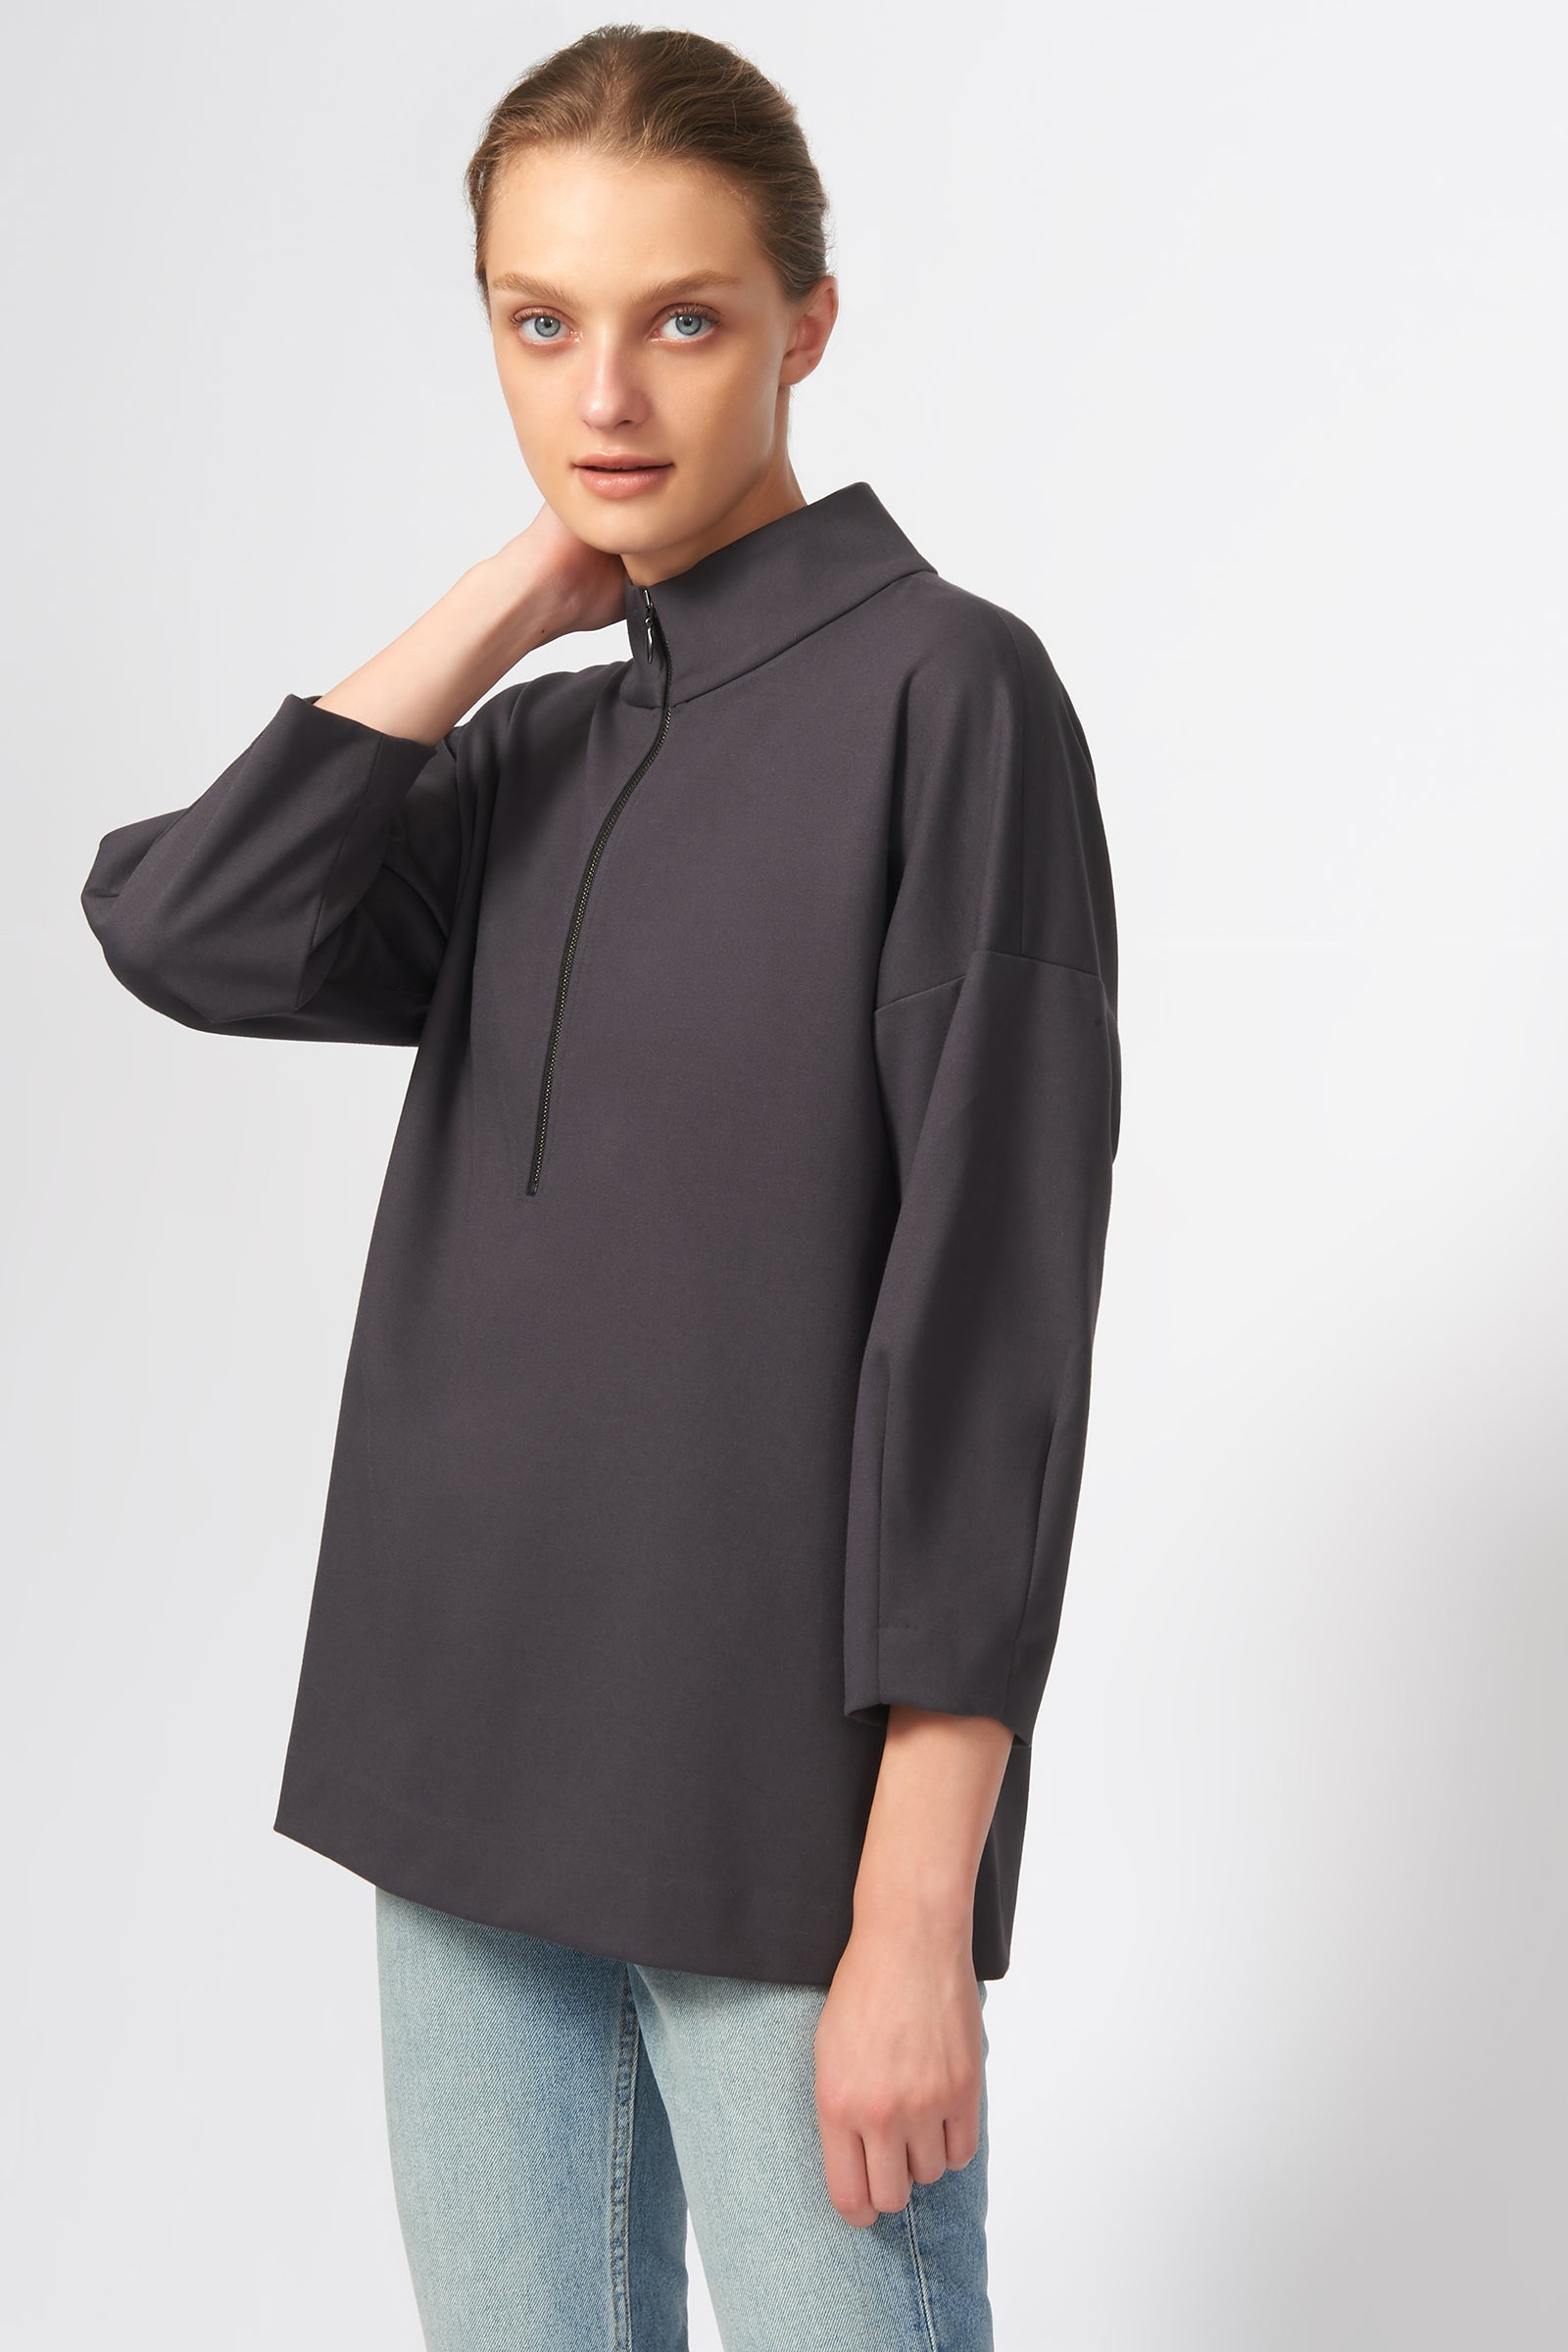 Kal Rieman Quarter Zip Ponte Top in Charcoal on Model Front View